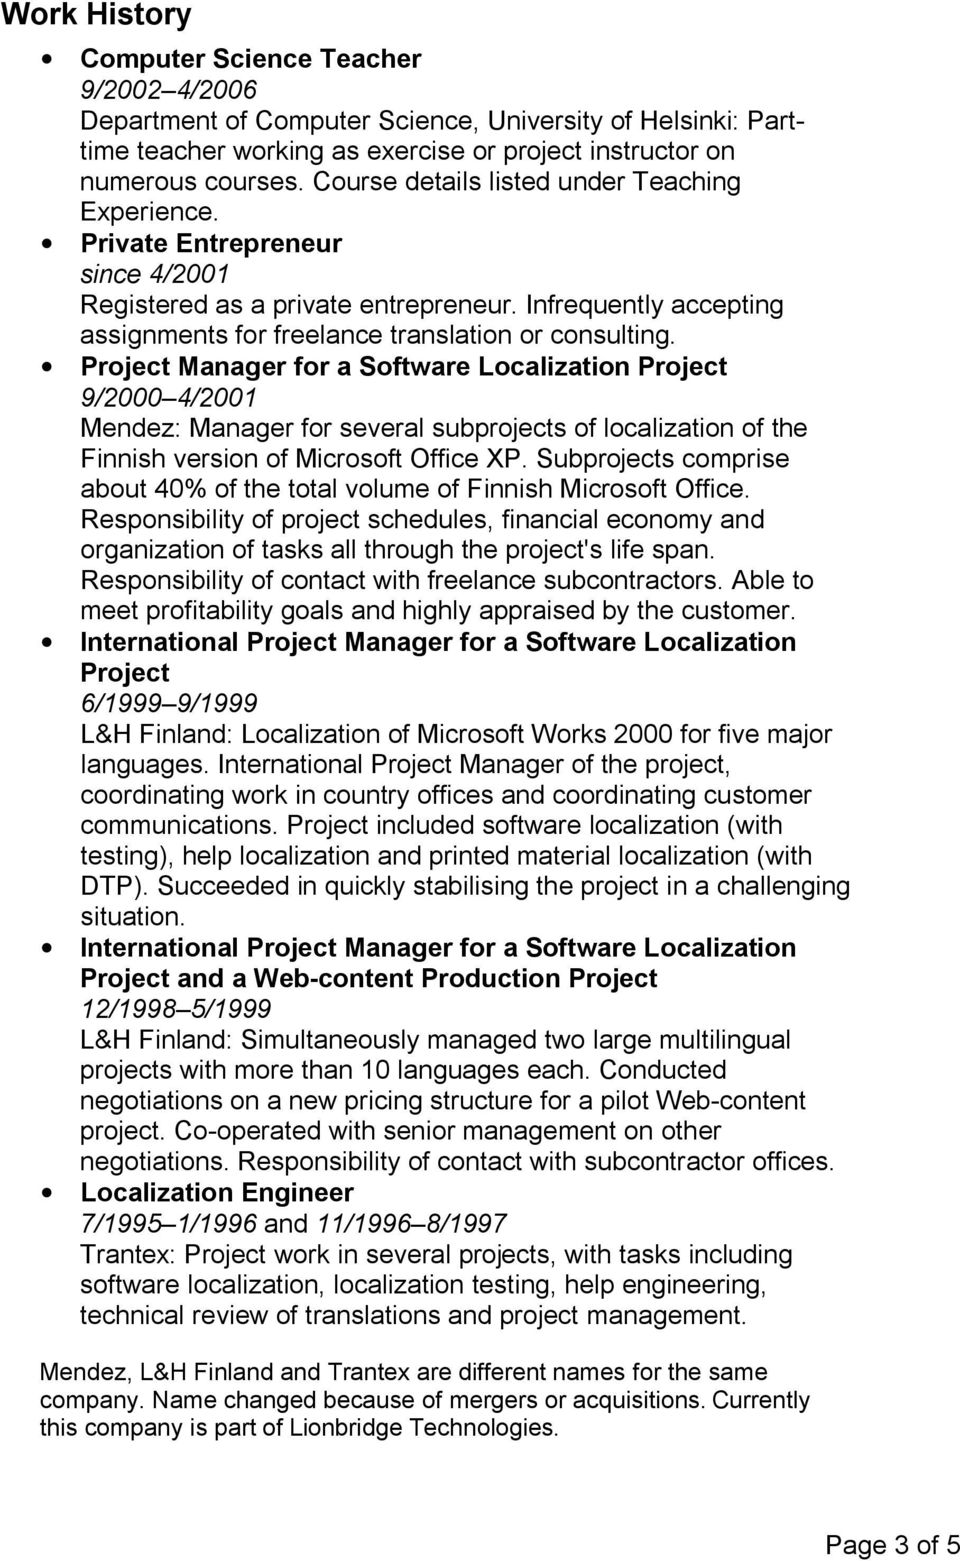 Project Manager for a Software Localization Project 9/2000 4/2001 Mendez: Manager for several subprojects of localization of the Finnish version of Microsoft Office XP.